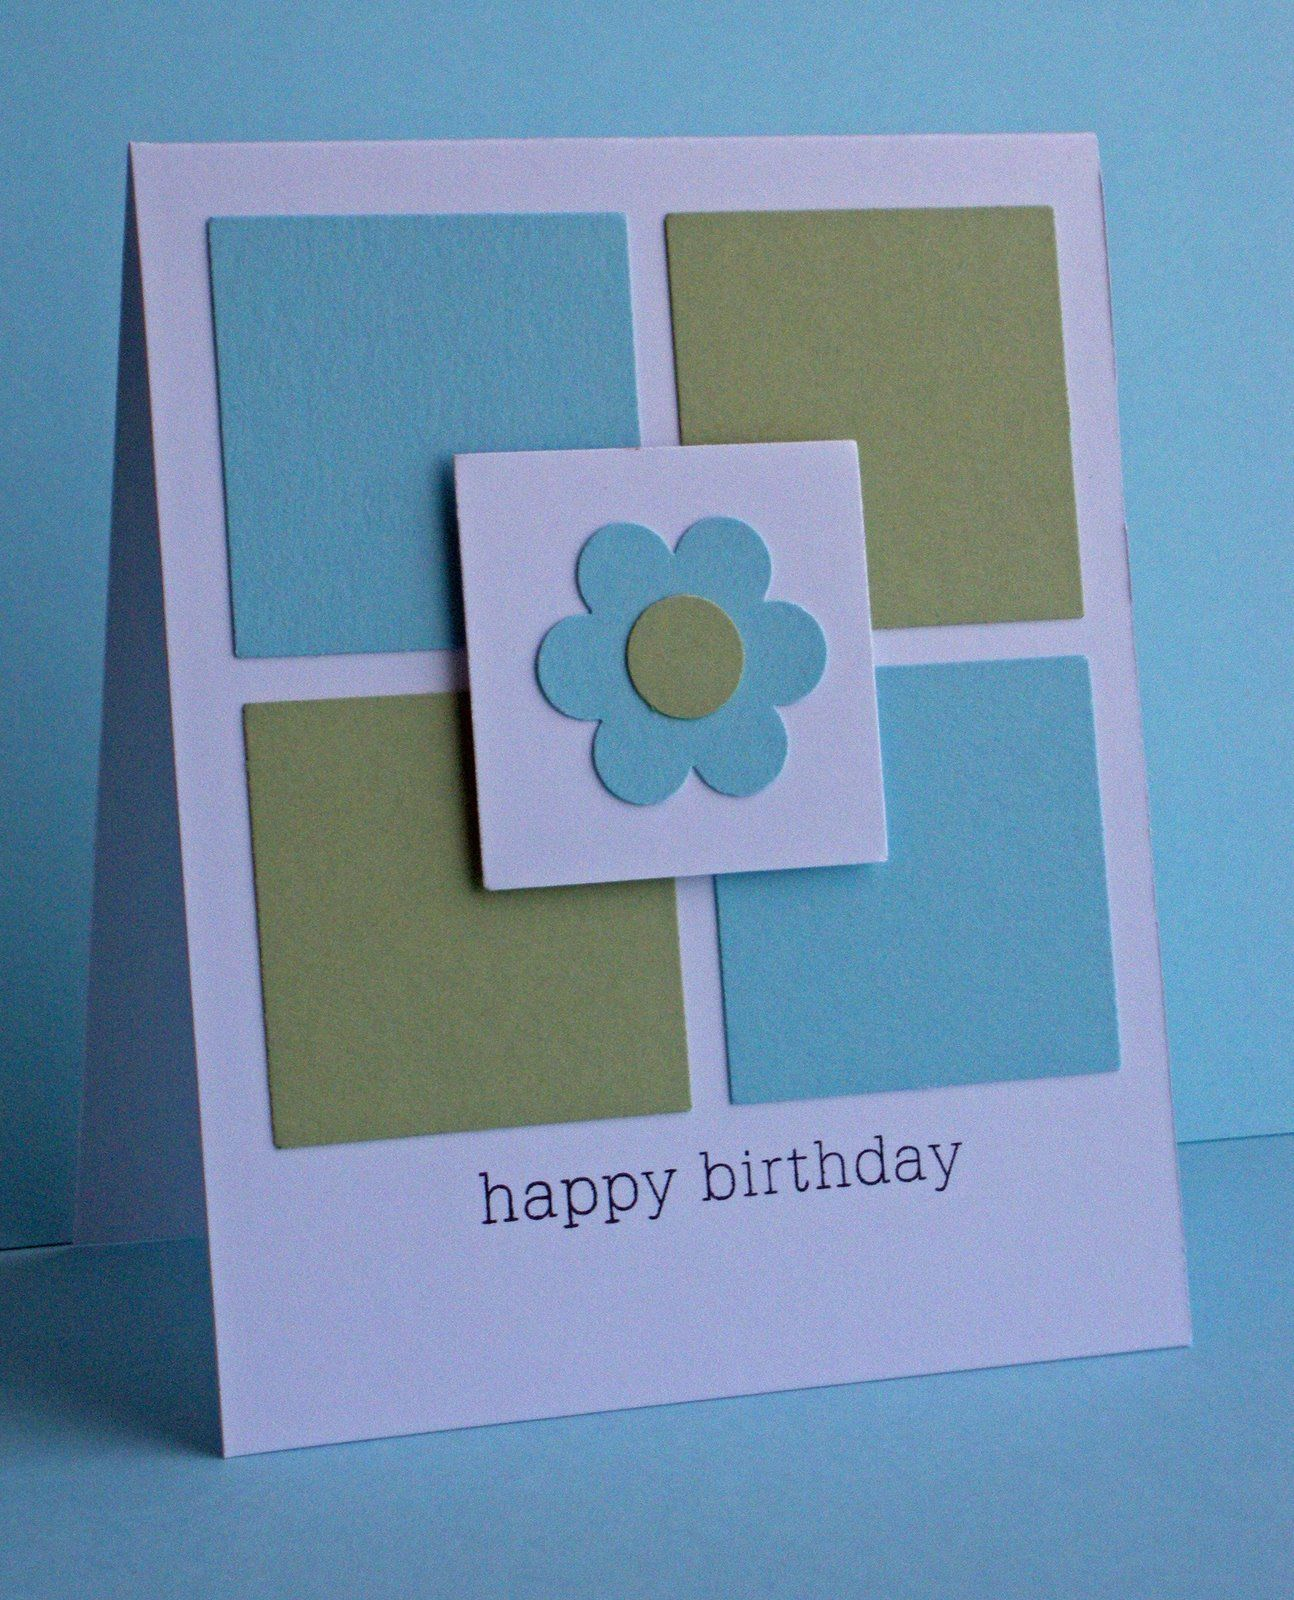 Cute easy homemade birthday card ideas valoblogi cas block birthdayg easy birthday cardscard ideas birthdaybirthday greeting cardshomemade also best card images on pinterest m4hsunfo